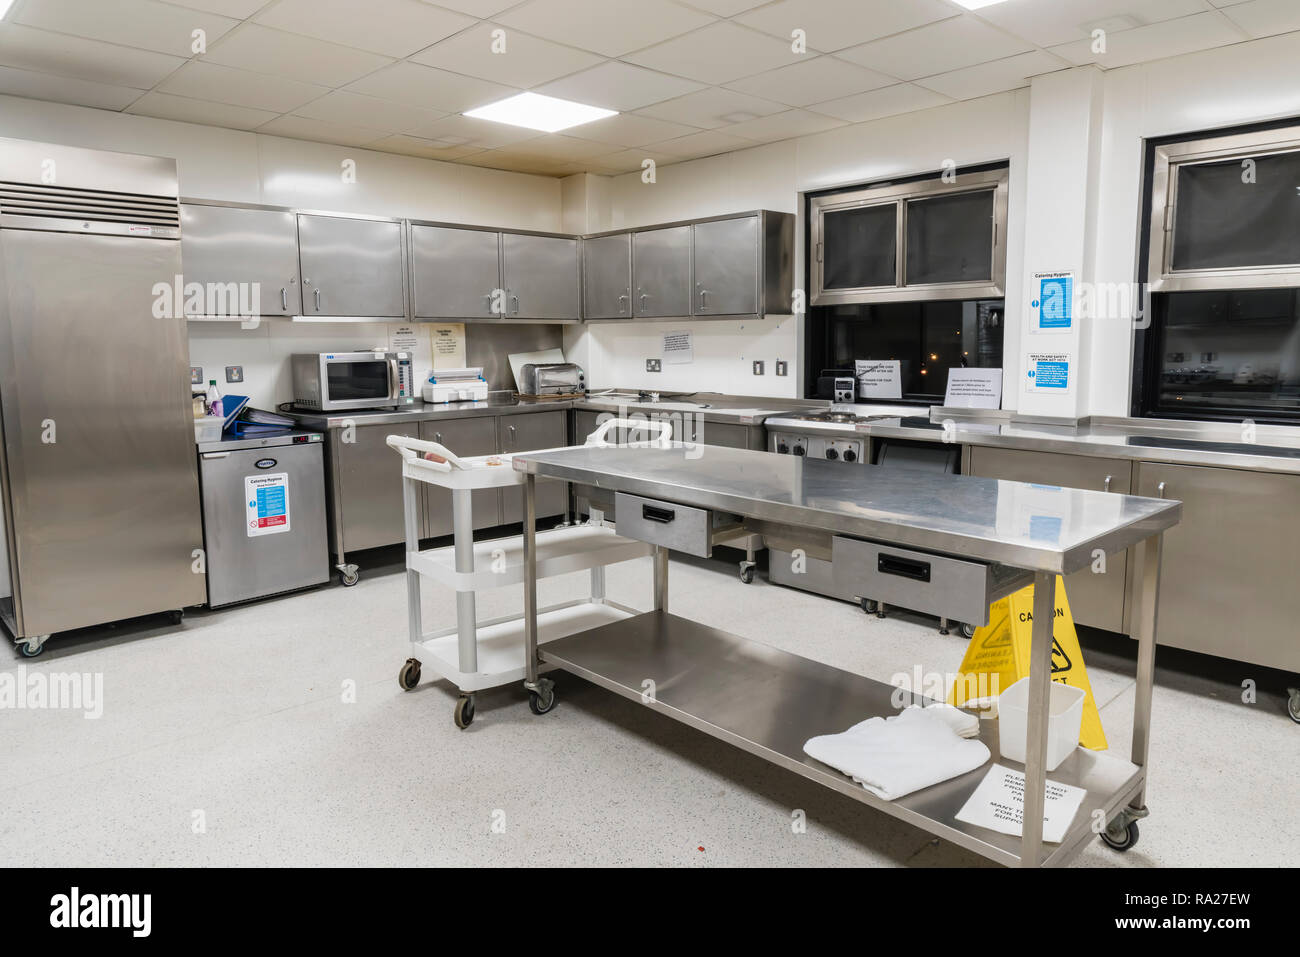 Stainless steel cupboards and worktops in the kitchen of a hospital ward stock image